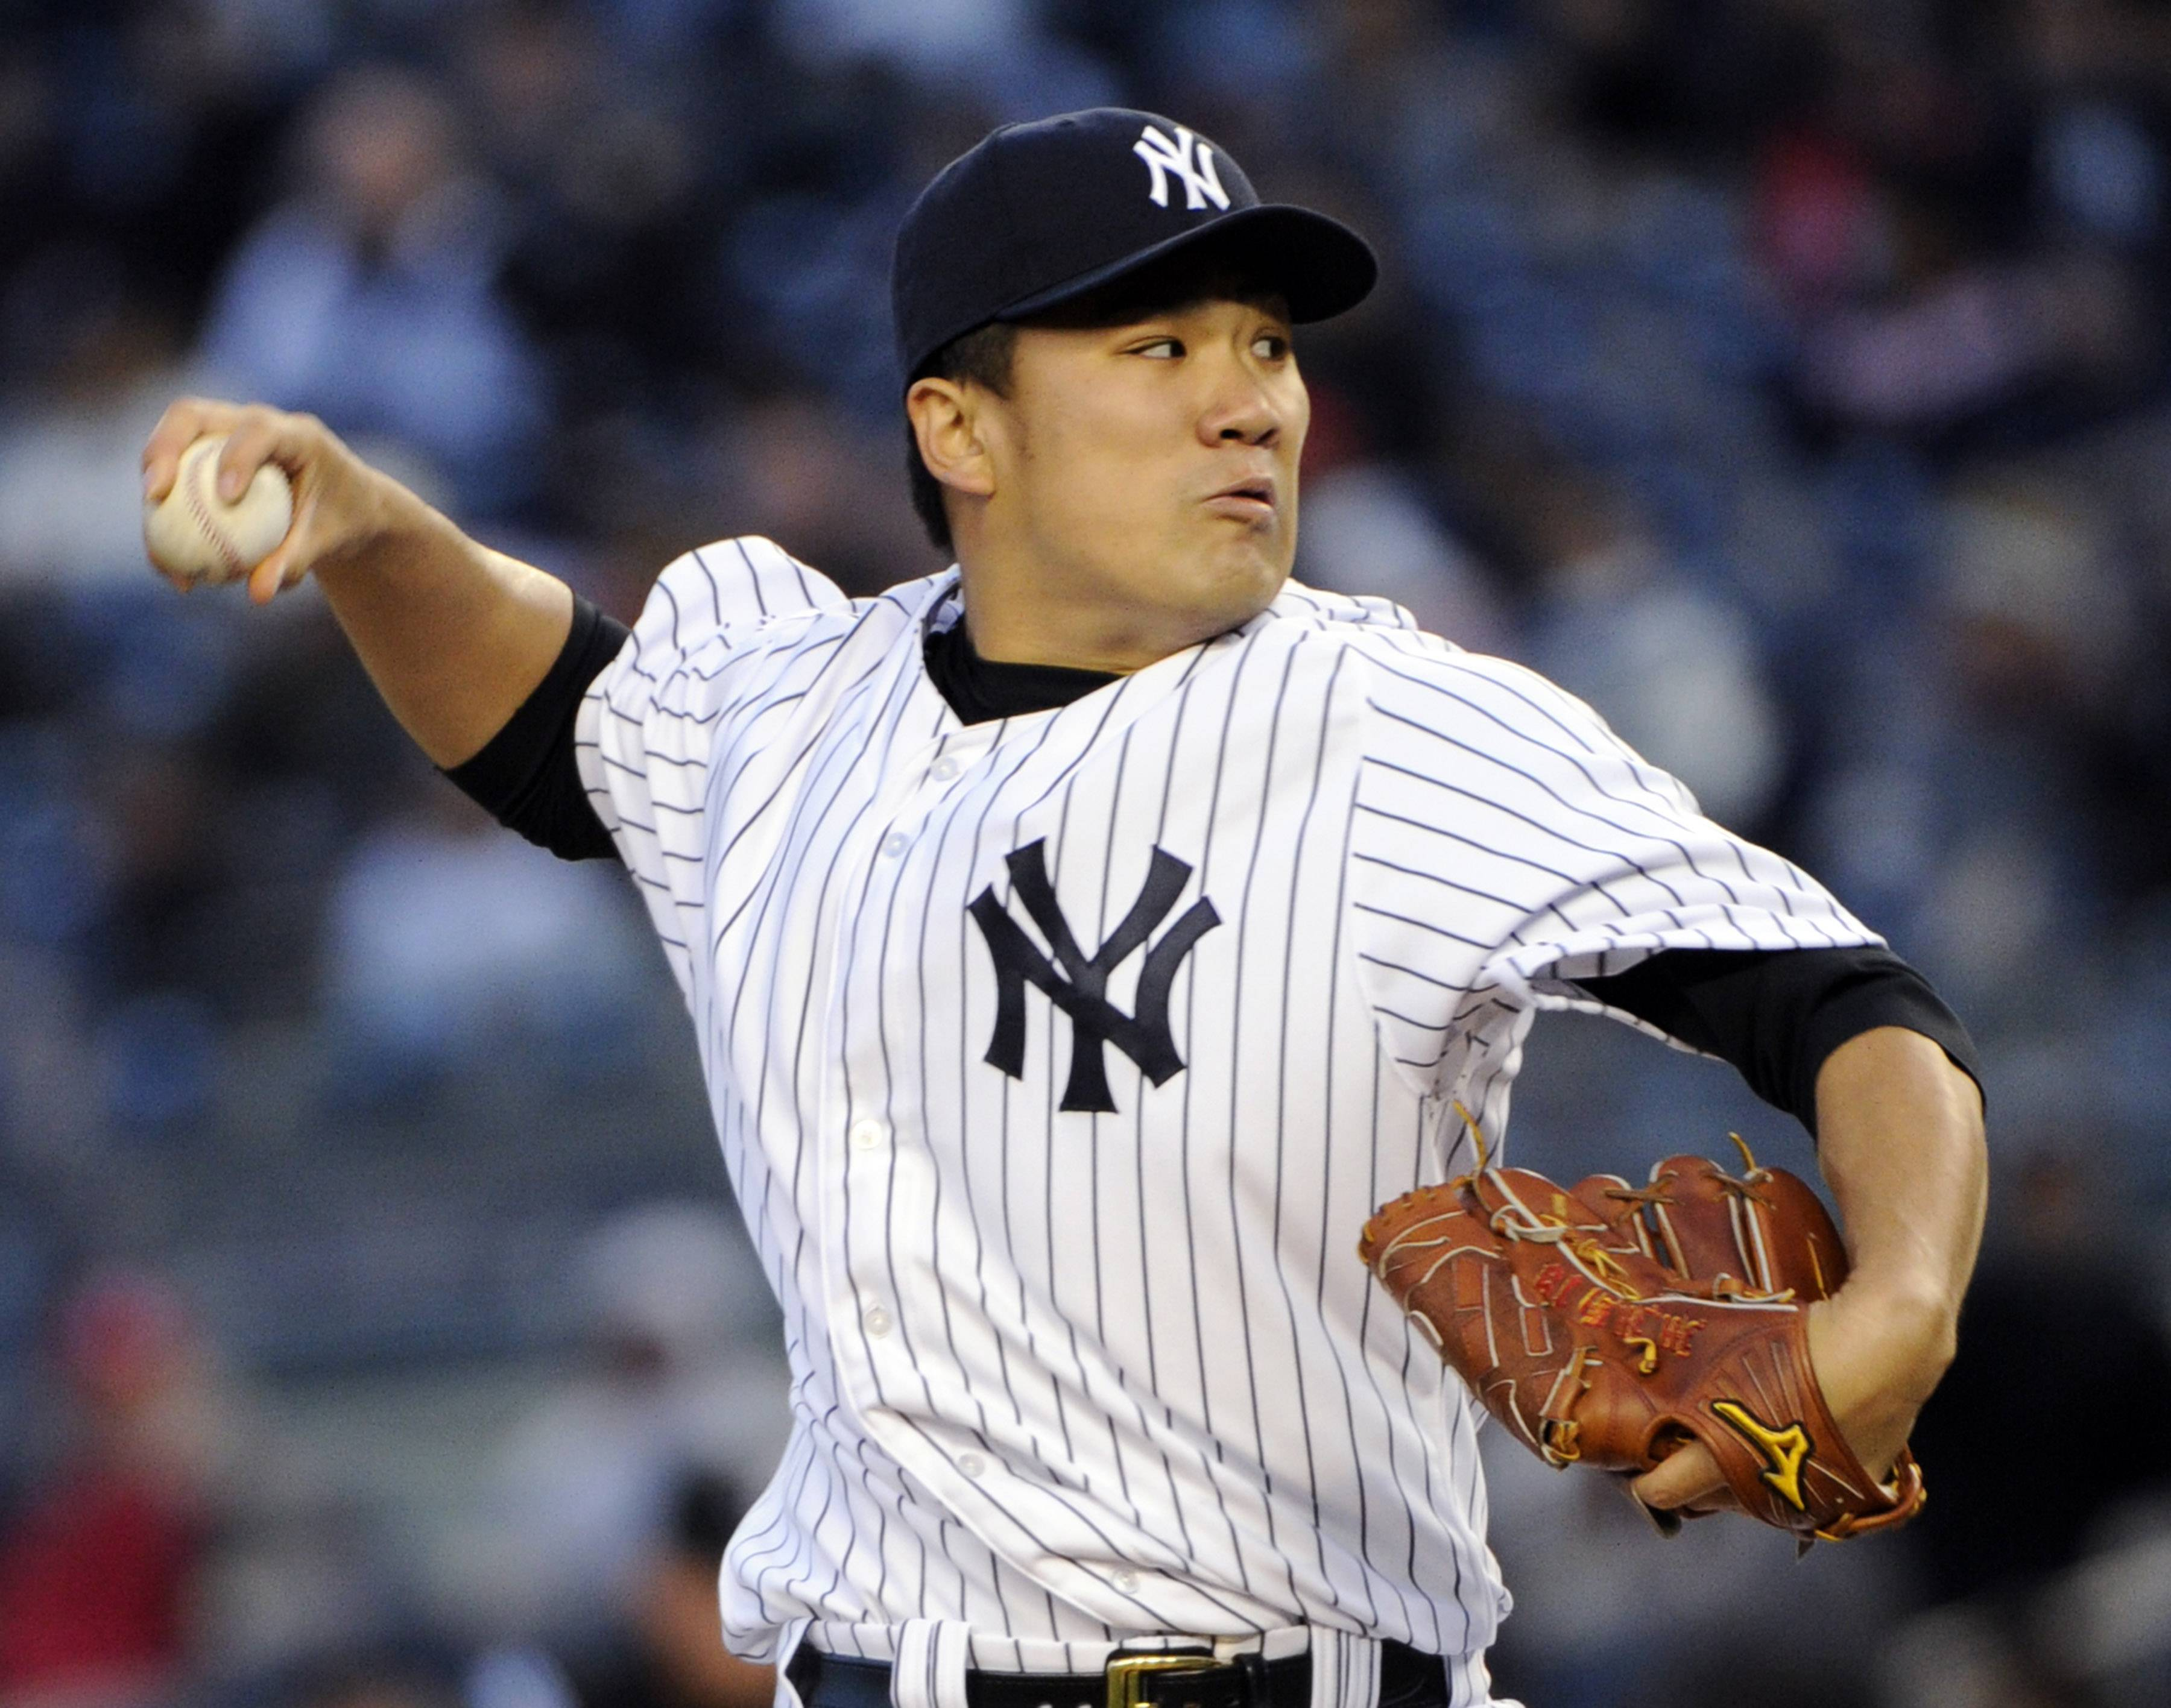 The Cubs will face New York Yankees pitcher Masahiro Tanaka (above) in Game 1 of a doubleheader in Yankee stadium on Wednesday. The game was postponed due to bad weather. Josh Hammel will pitch for the Cubs in Game 1.